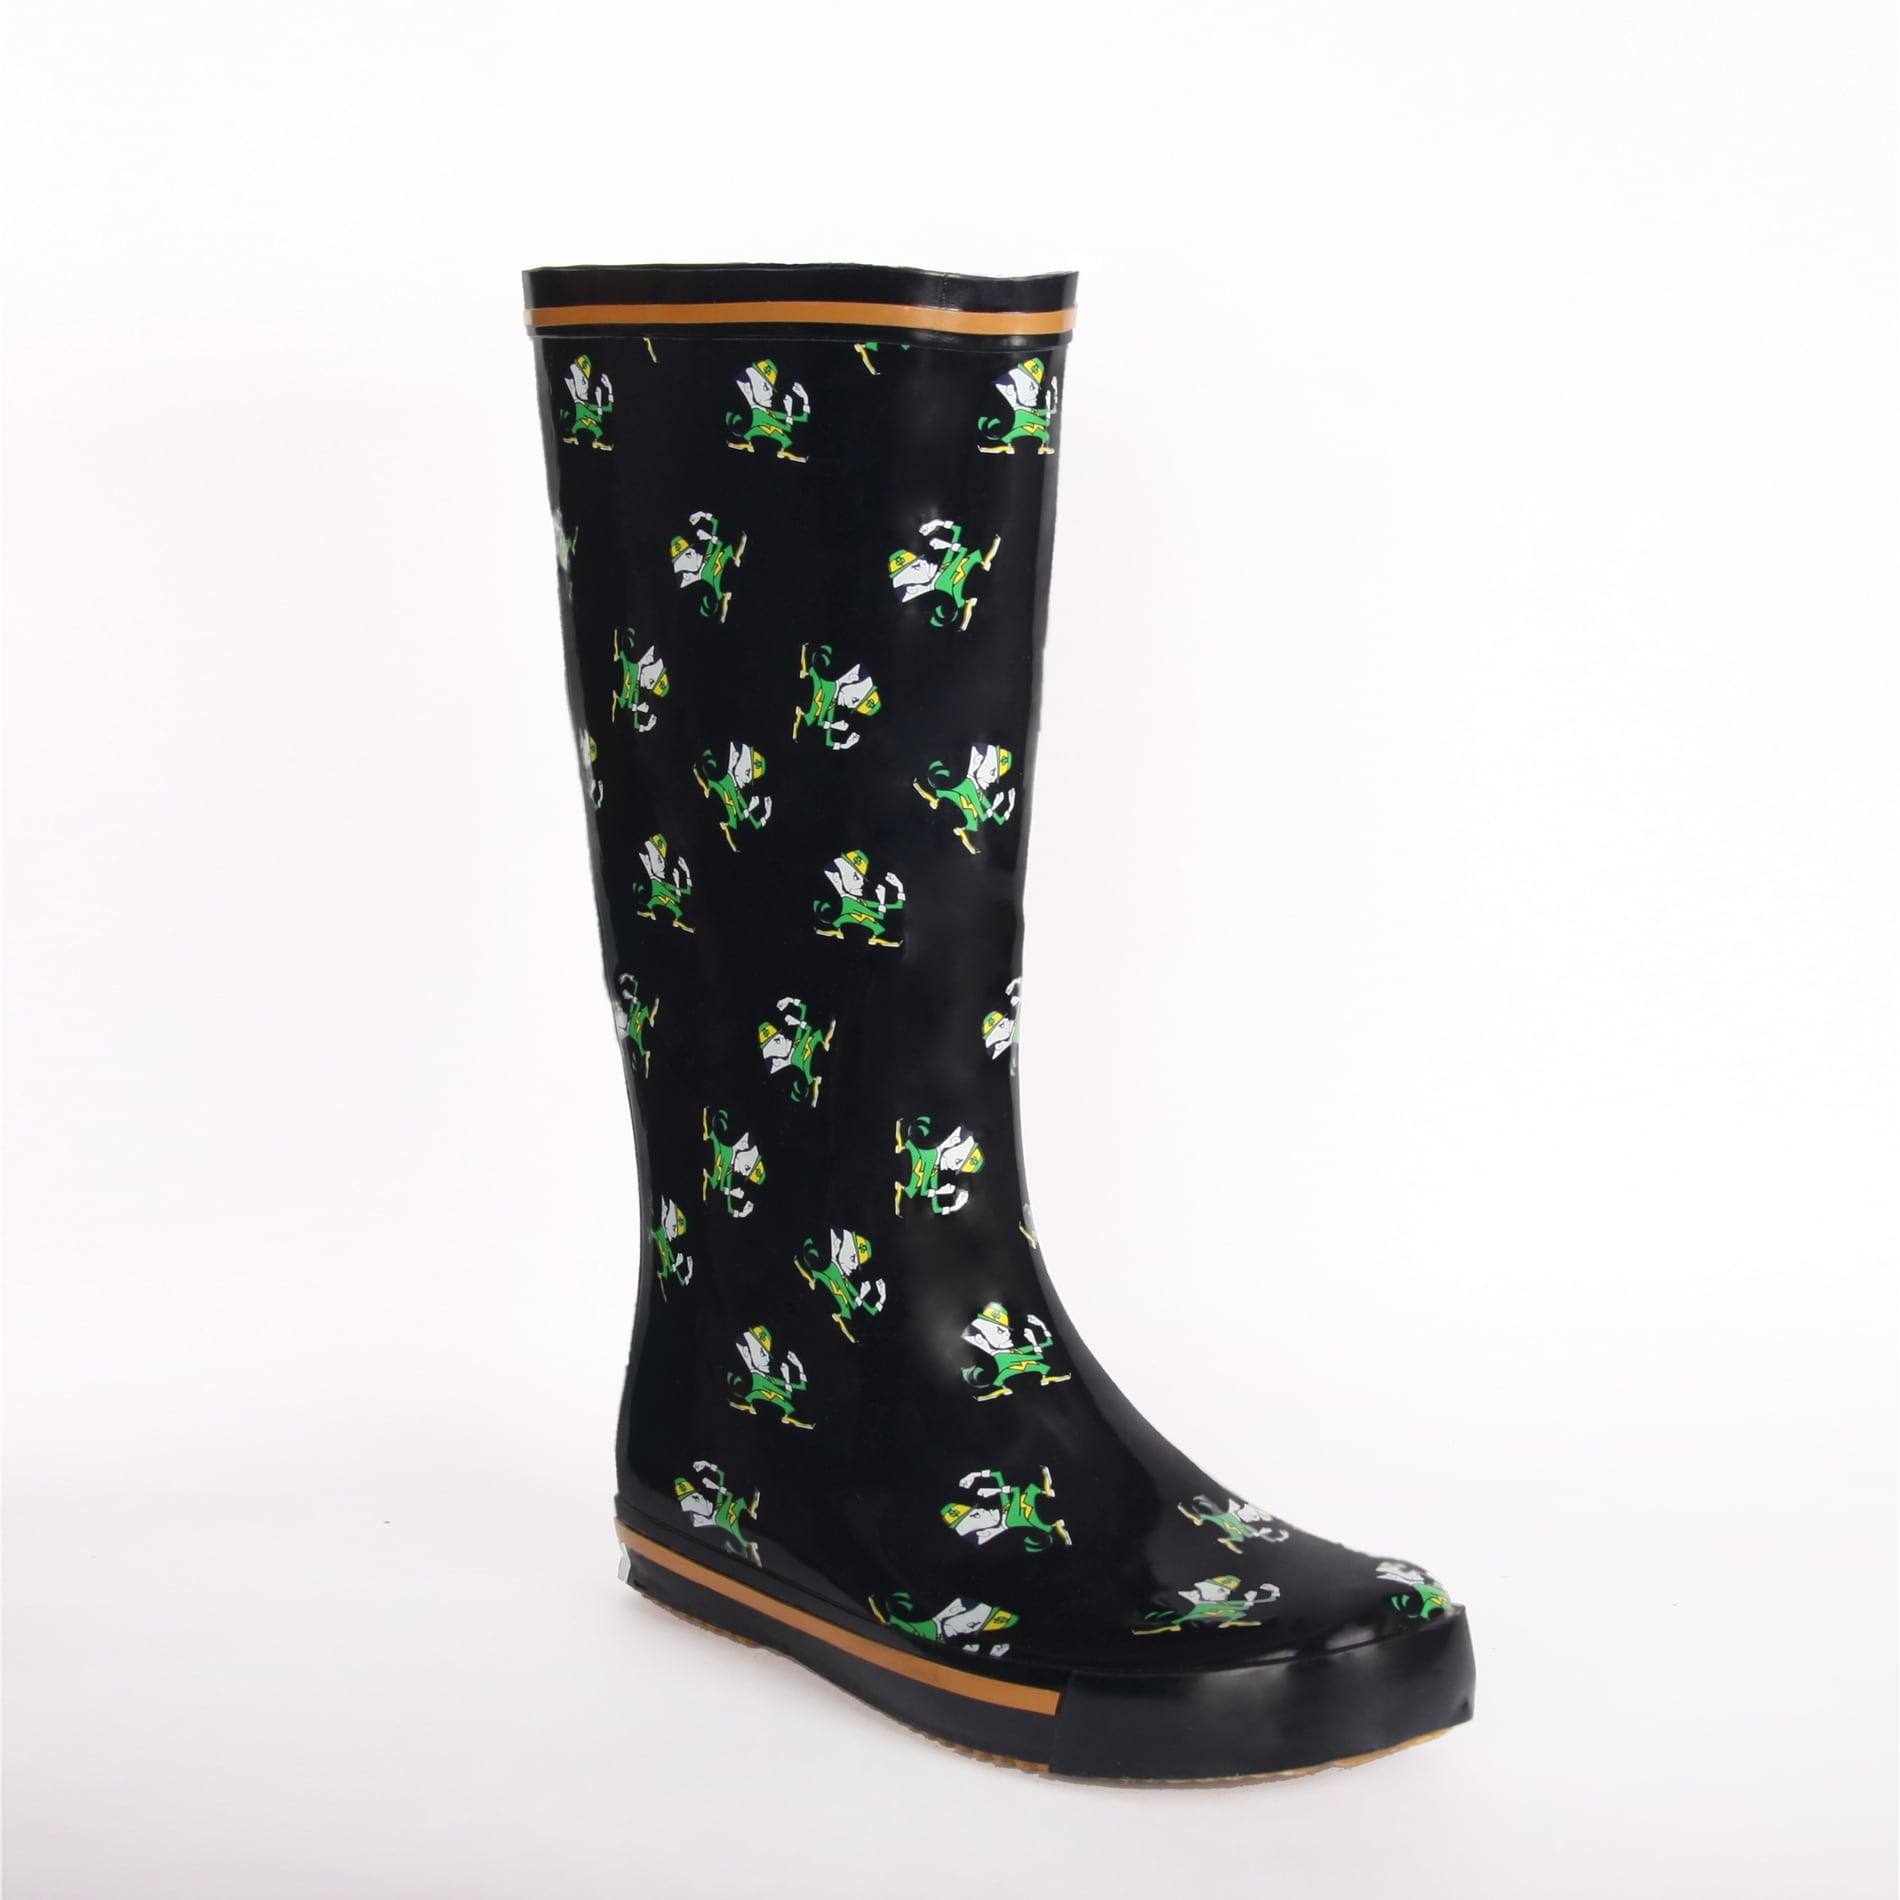 Notre Dame Fighting Irish Women's Leprechaun Rain Boots